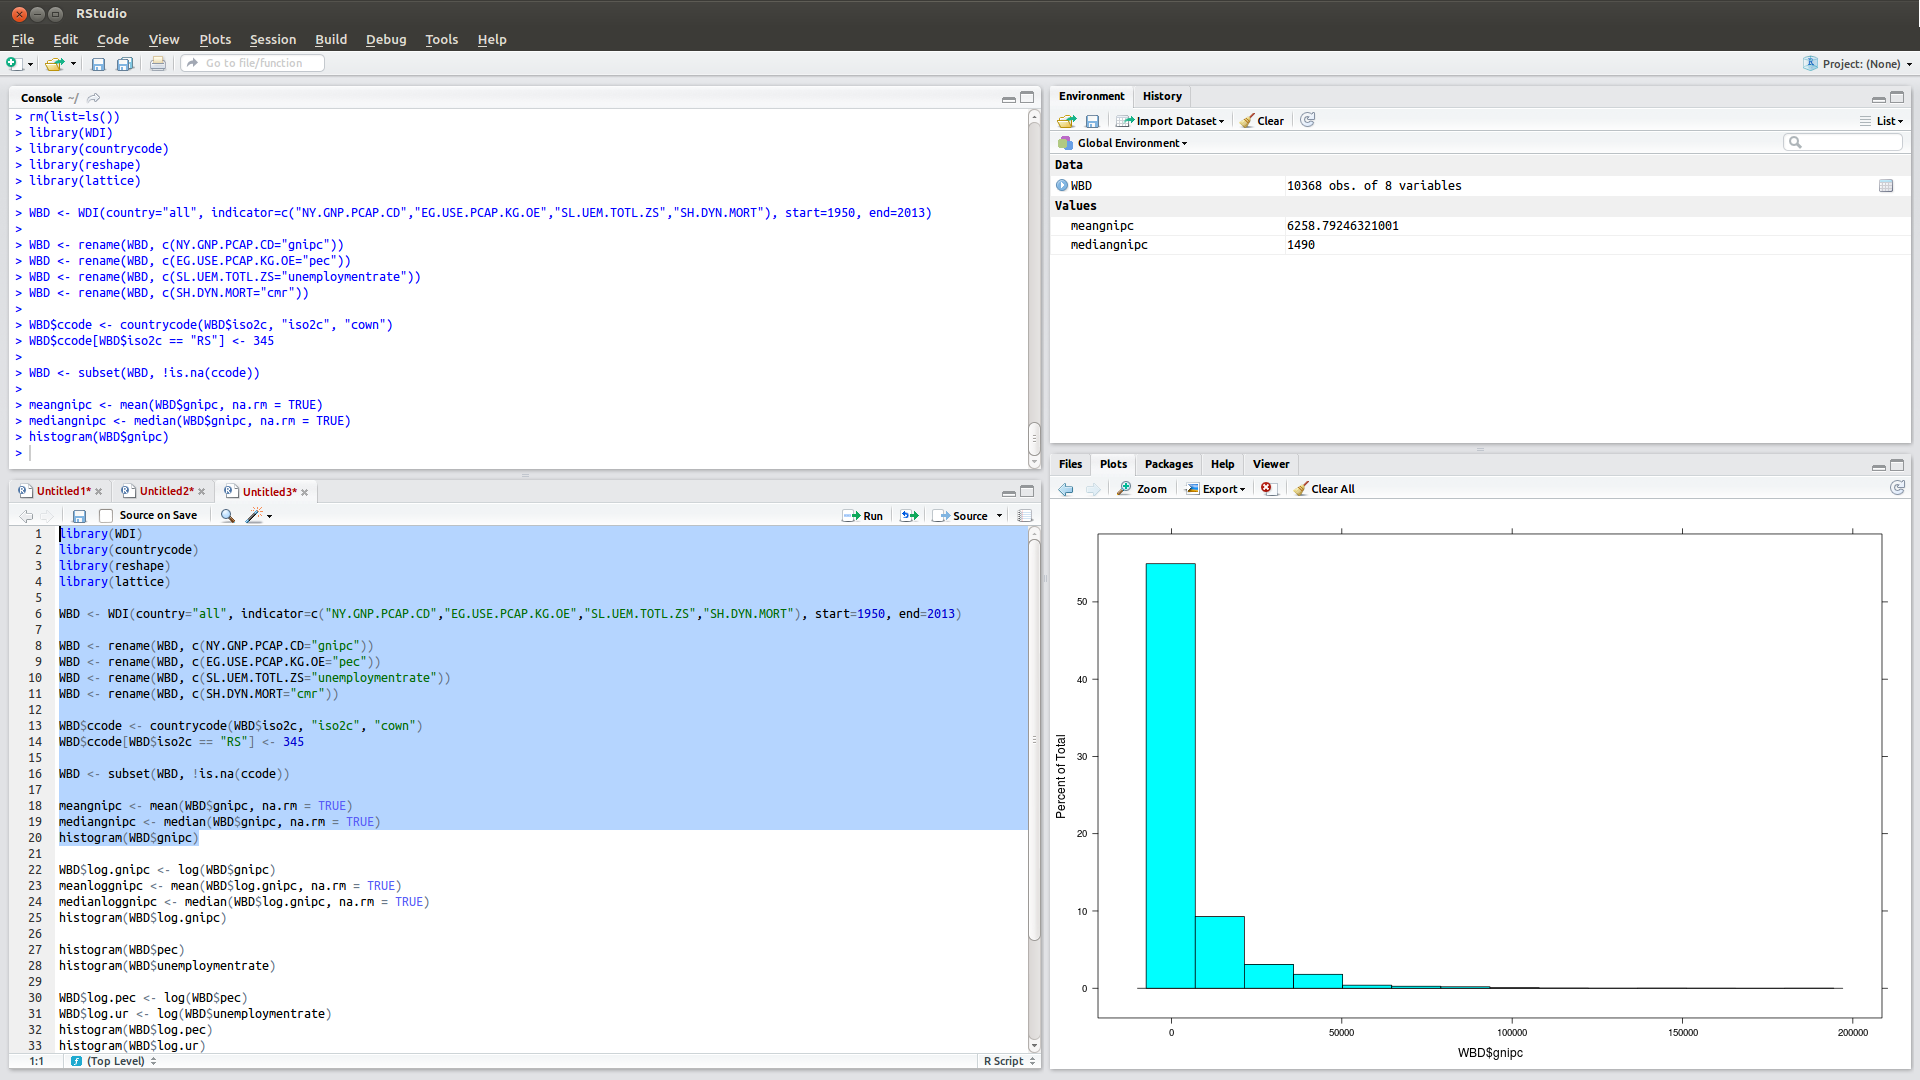 Rstudio interface (click to embiggen)